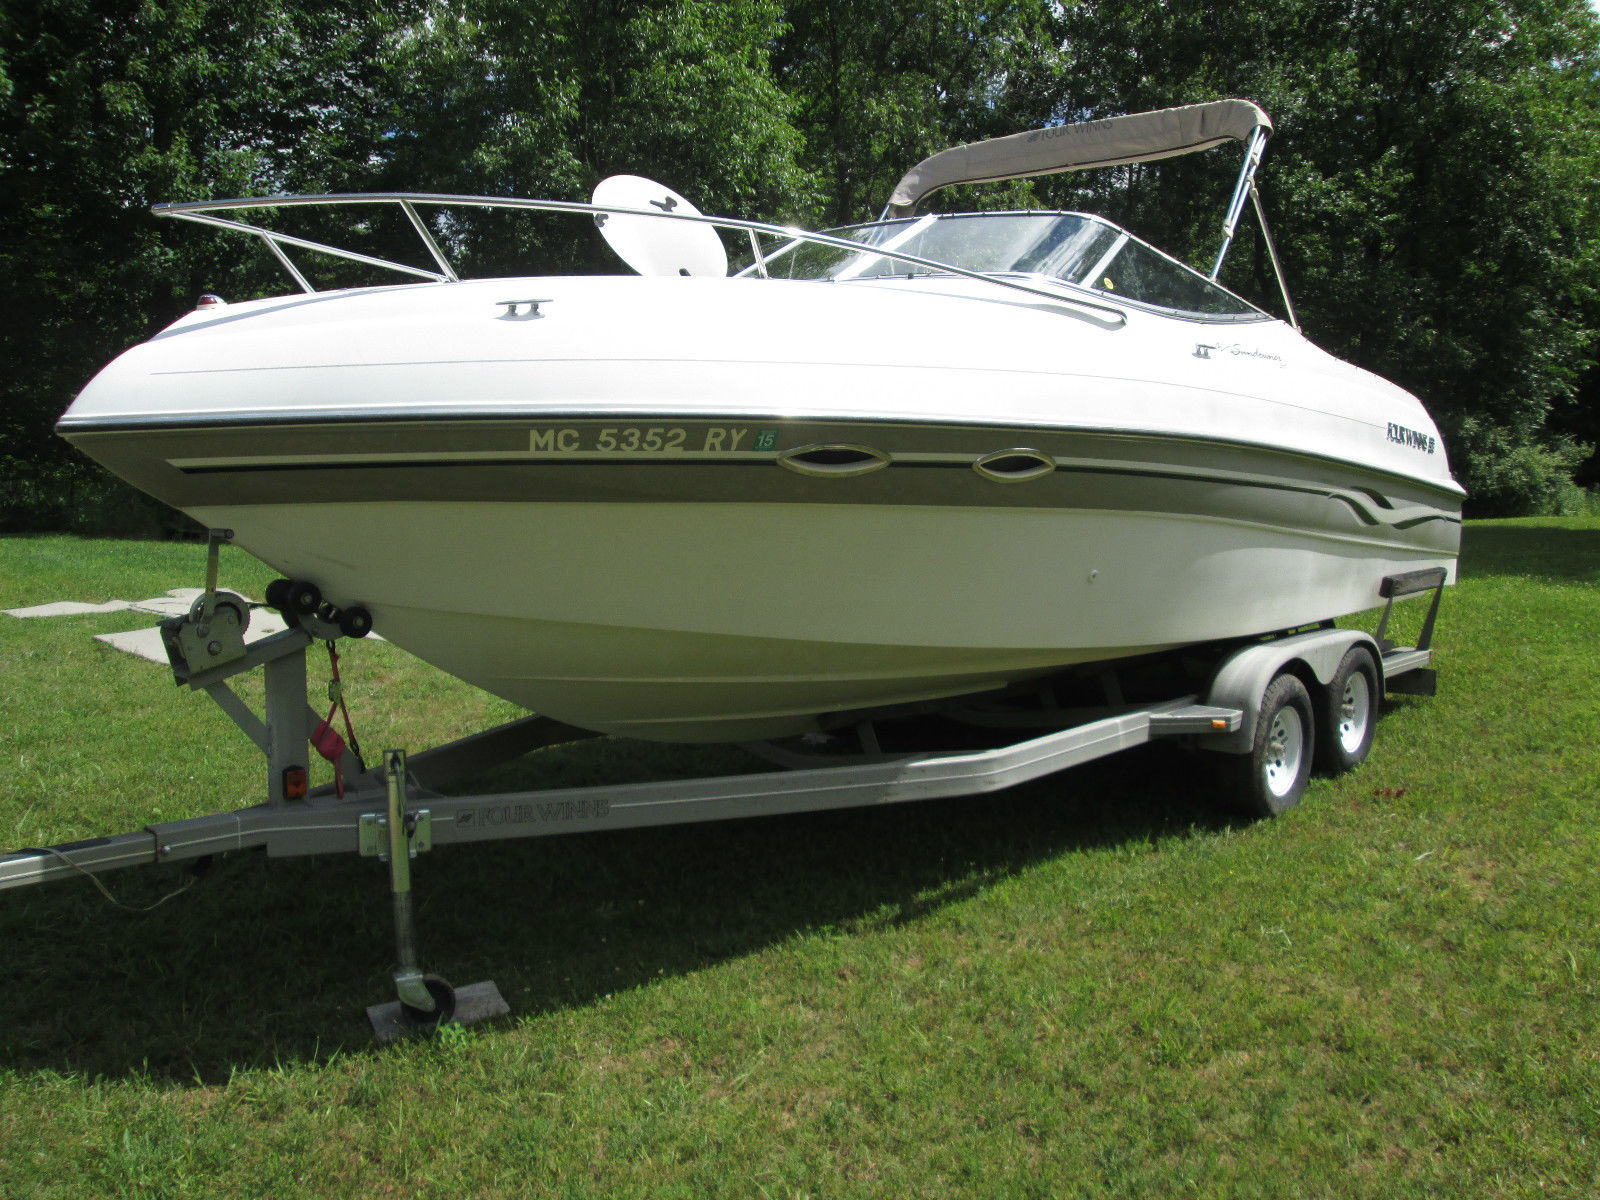 Ohio's Largest Selection of New and Used Pontoon Boats. Sylvan, Starcraft, Manitou, Qwest, Gillgetter, Crest, Sunchaser, Berkshire Pontoon Boats, and Lund Fishing Boats.